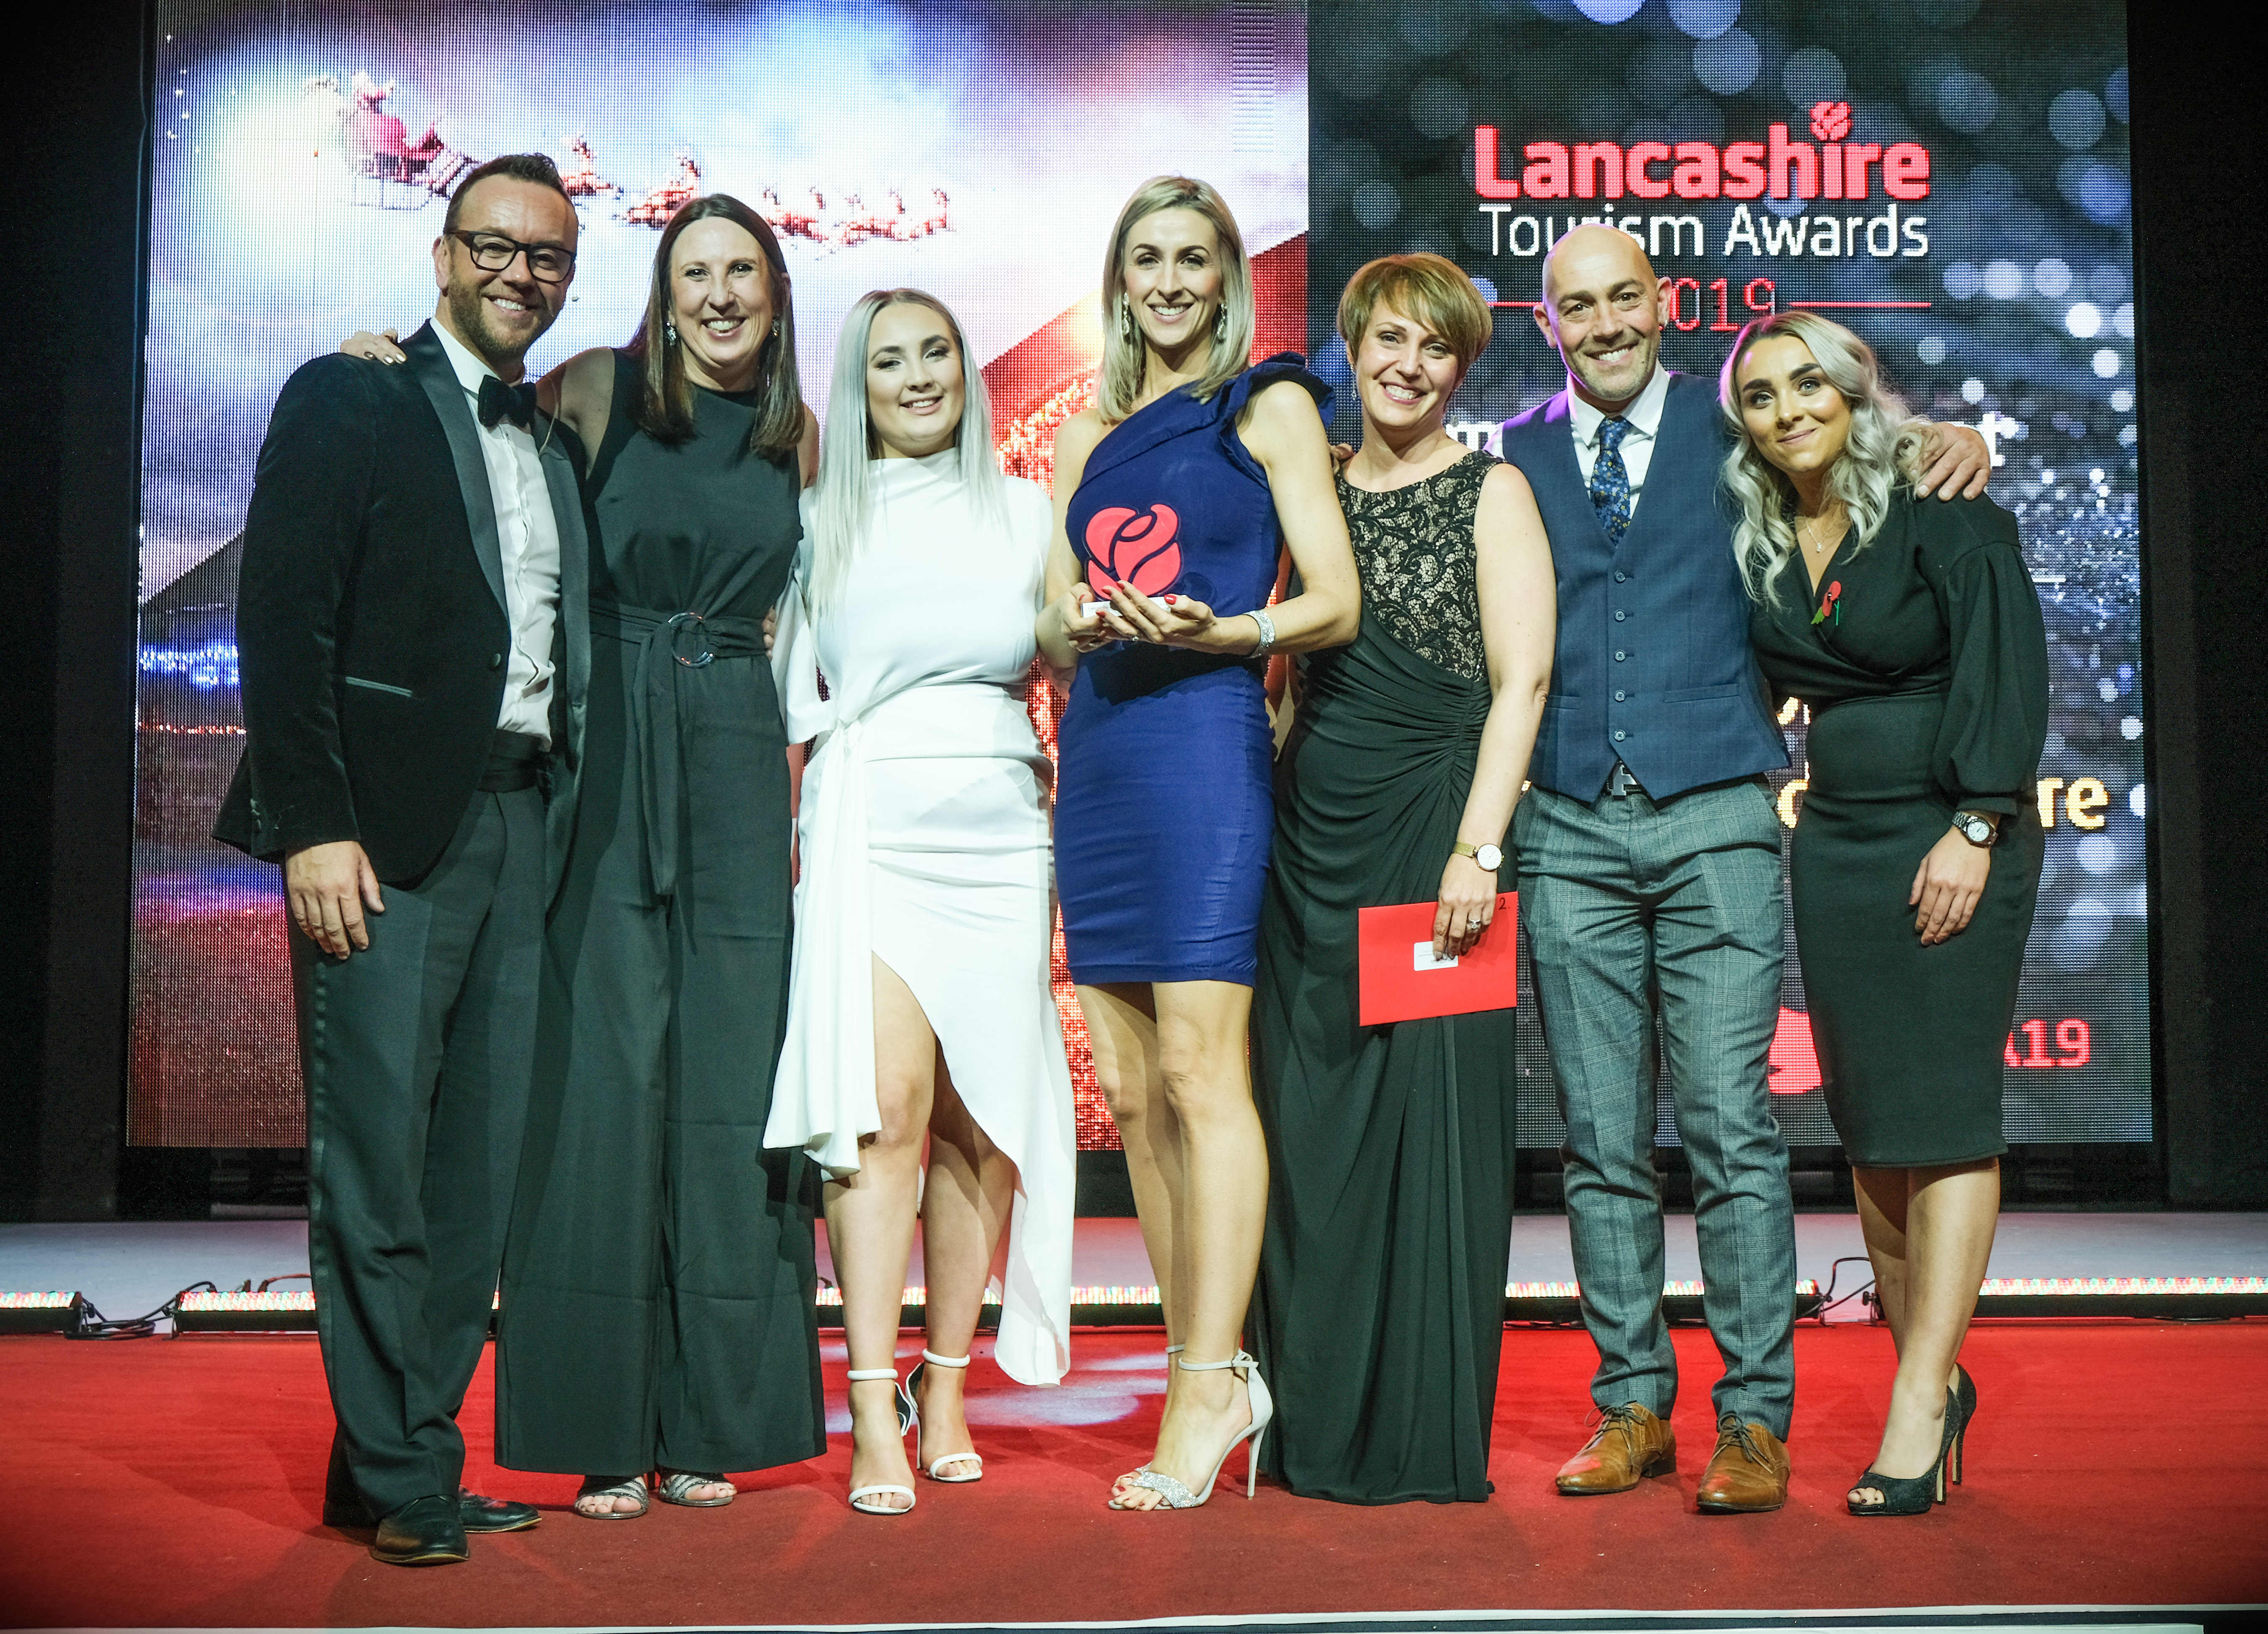 Top in Lancashire! Success for Pendle businesses at the Lancashire Tourism Awards